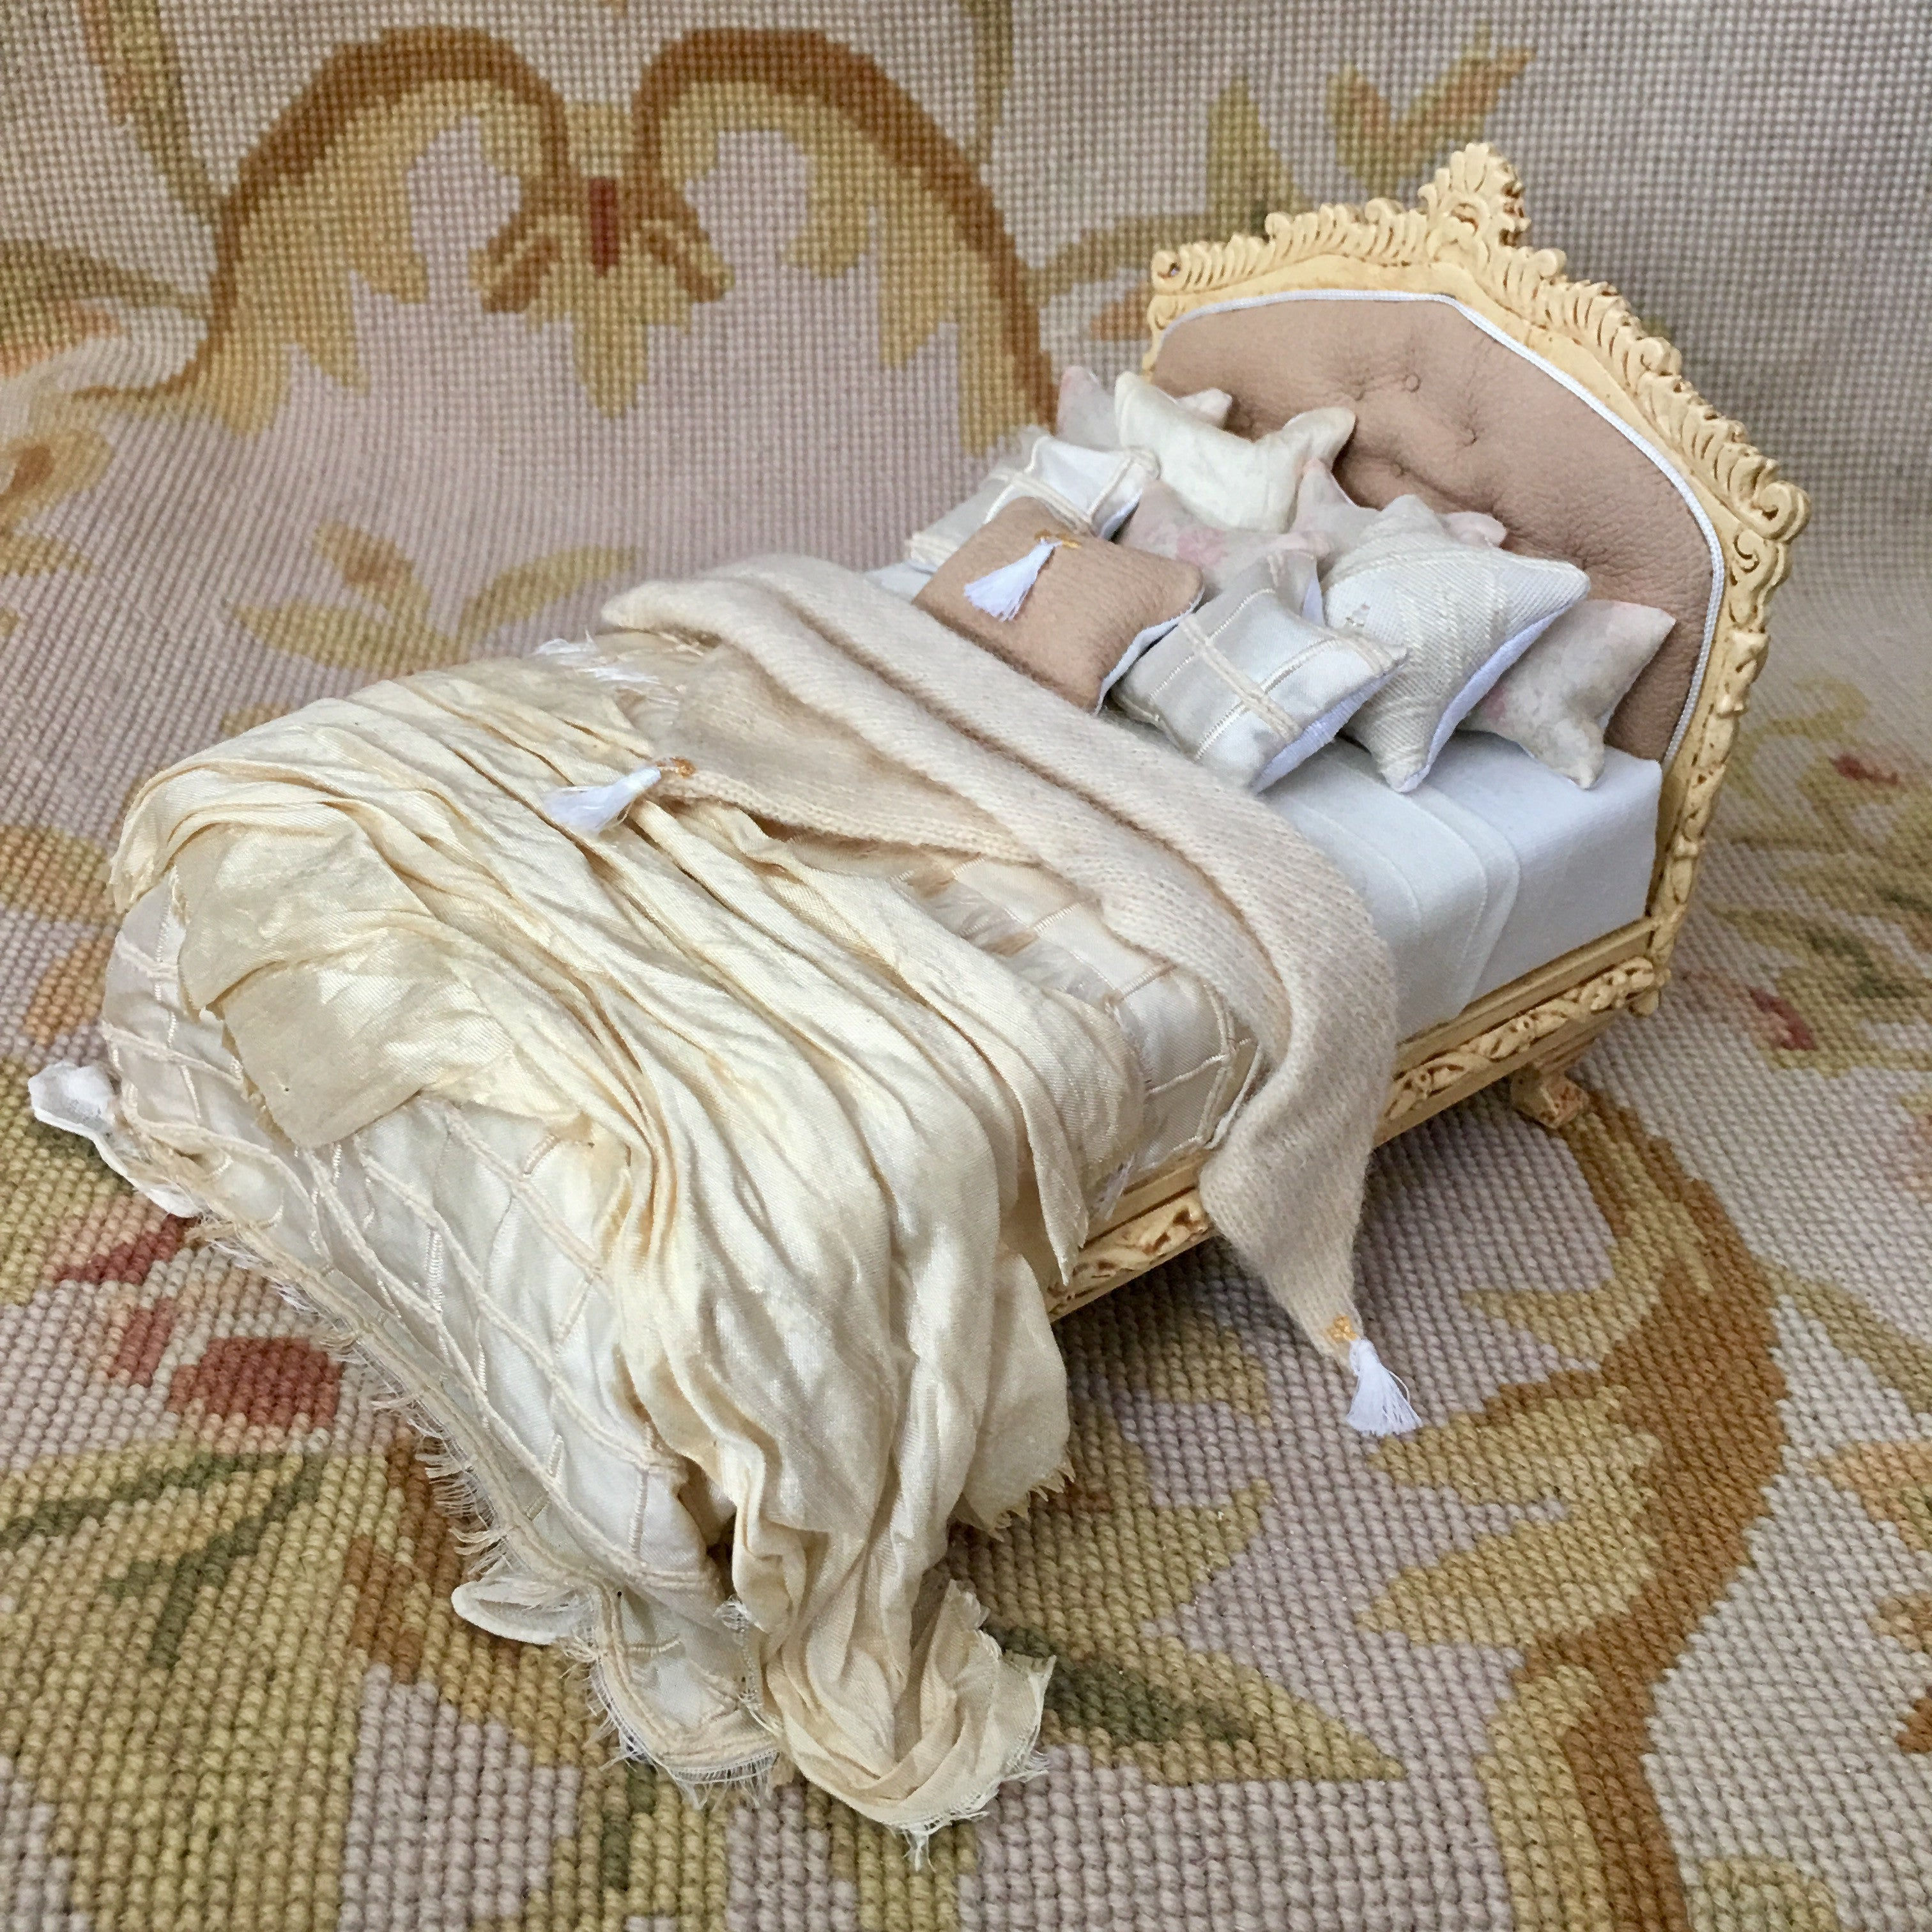 Bed Dressed Antique Sand 1:2 Scale SPECIAL ORDER Dollhouse Miniature